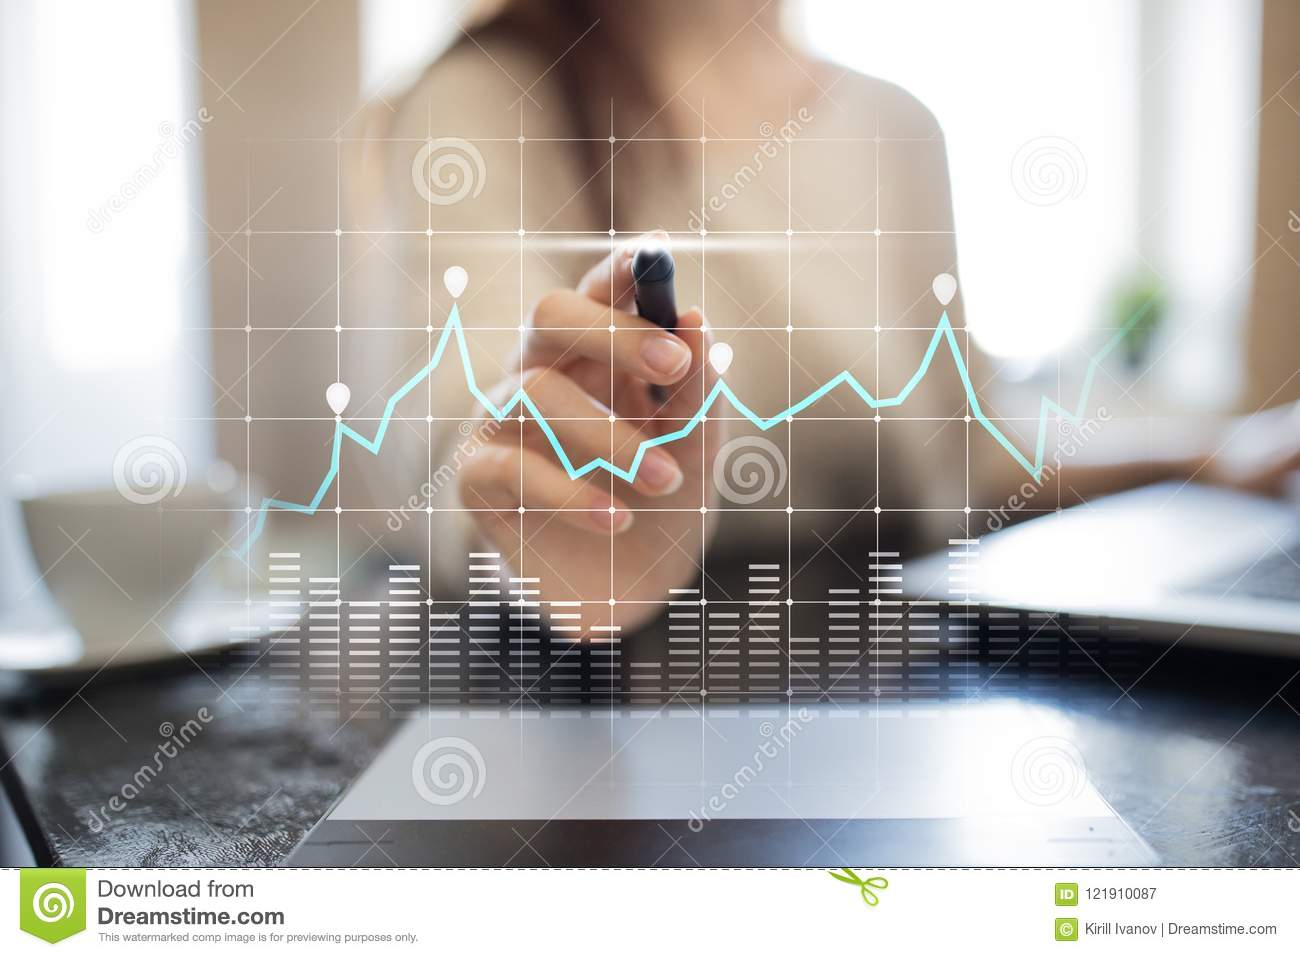 Diagrams and graphs on virtual screen. Business strategy, data analysis technology and financial growth concept.